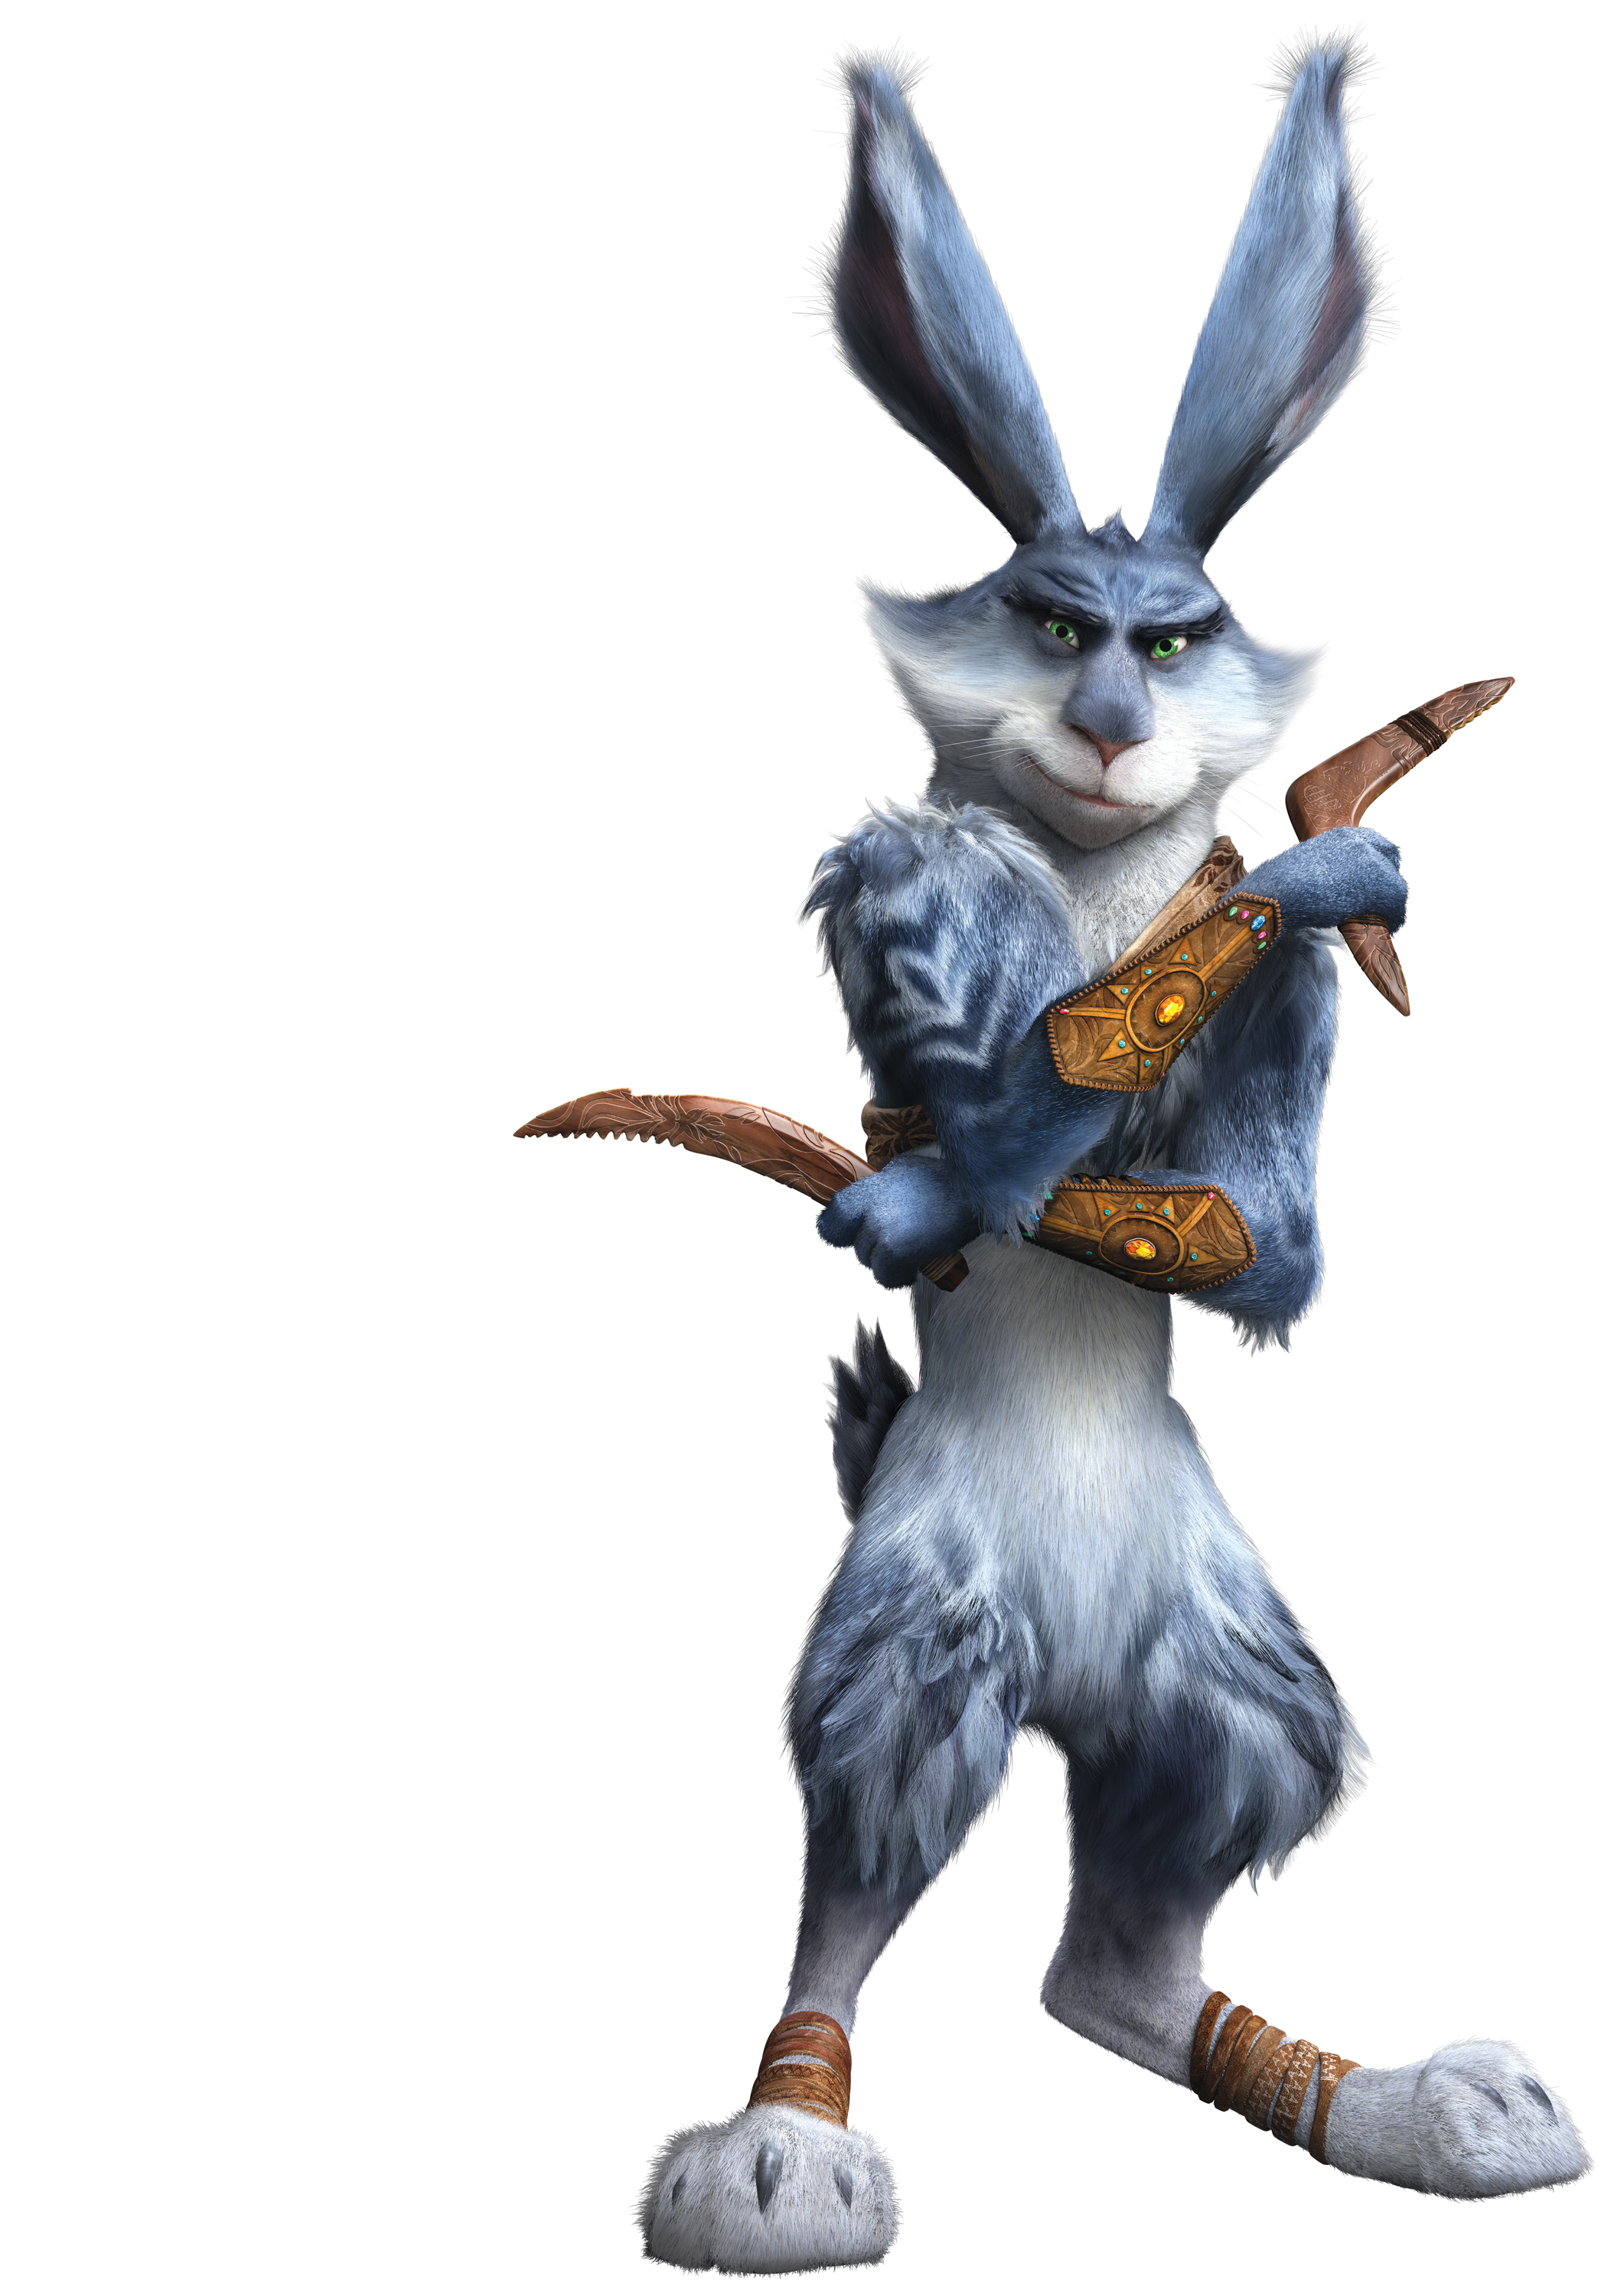 Easter Bunny from Rise of the Guardians